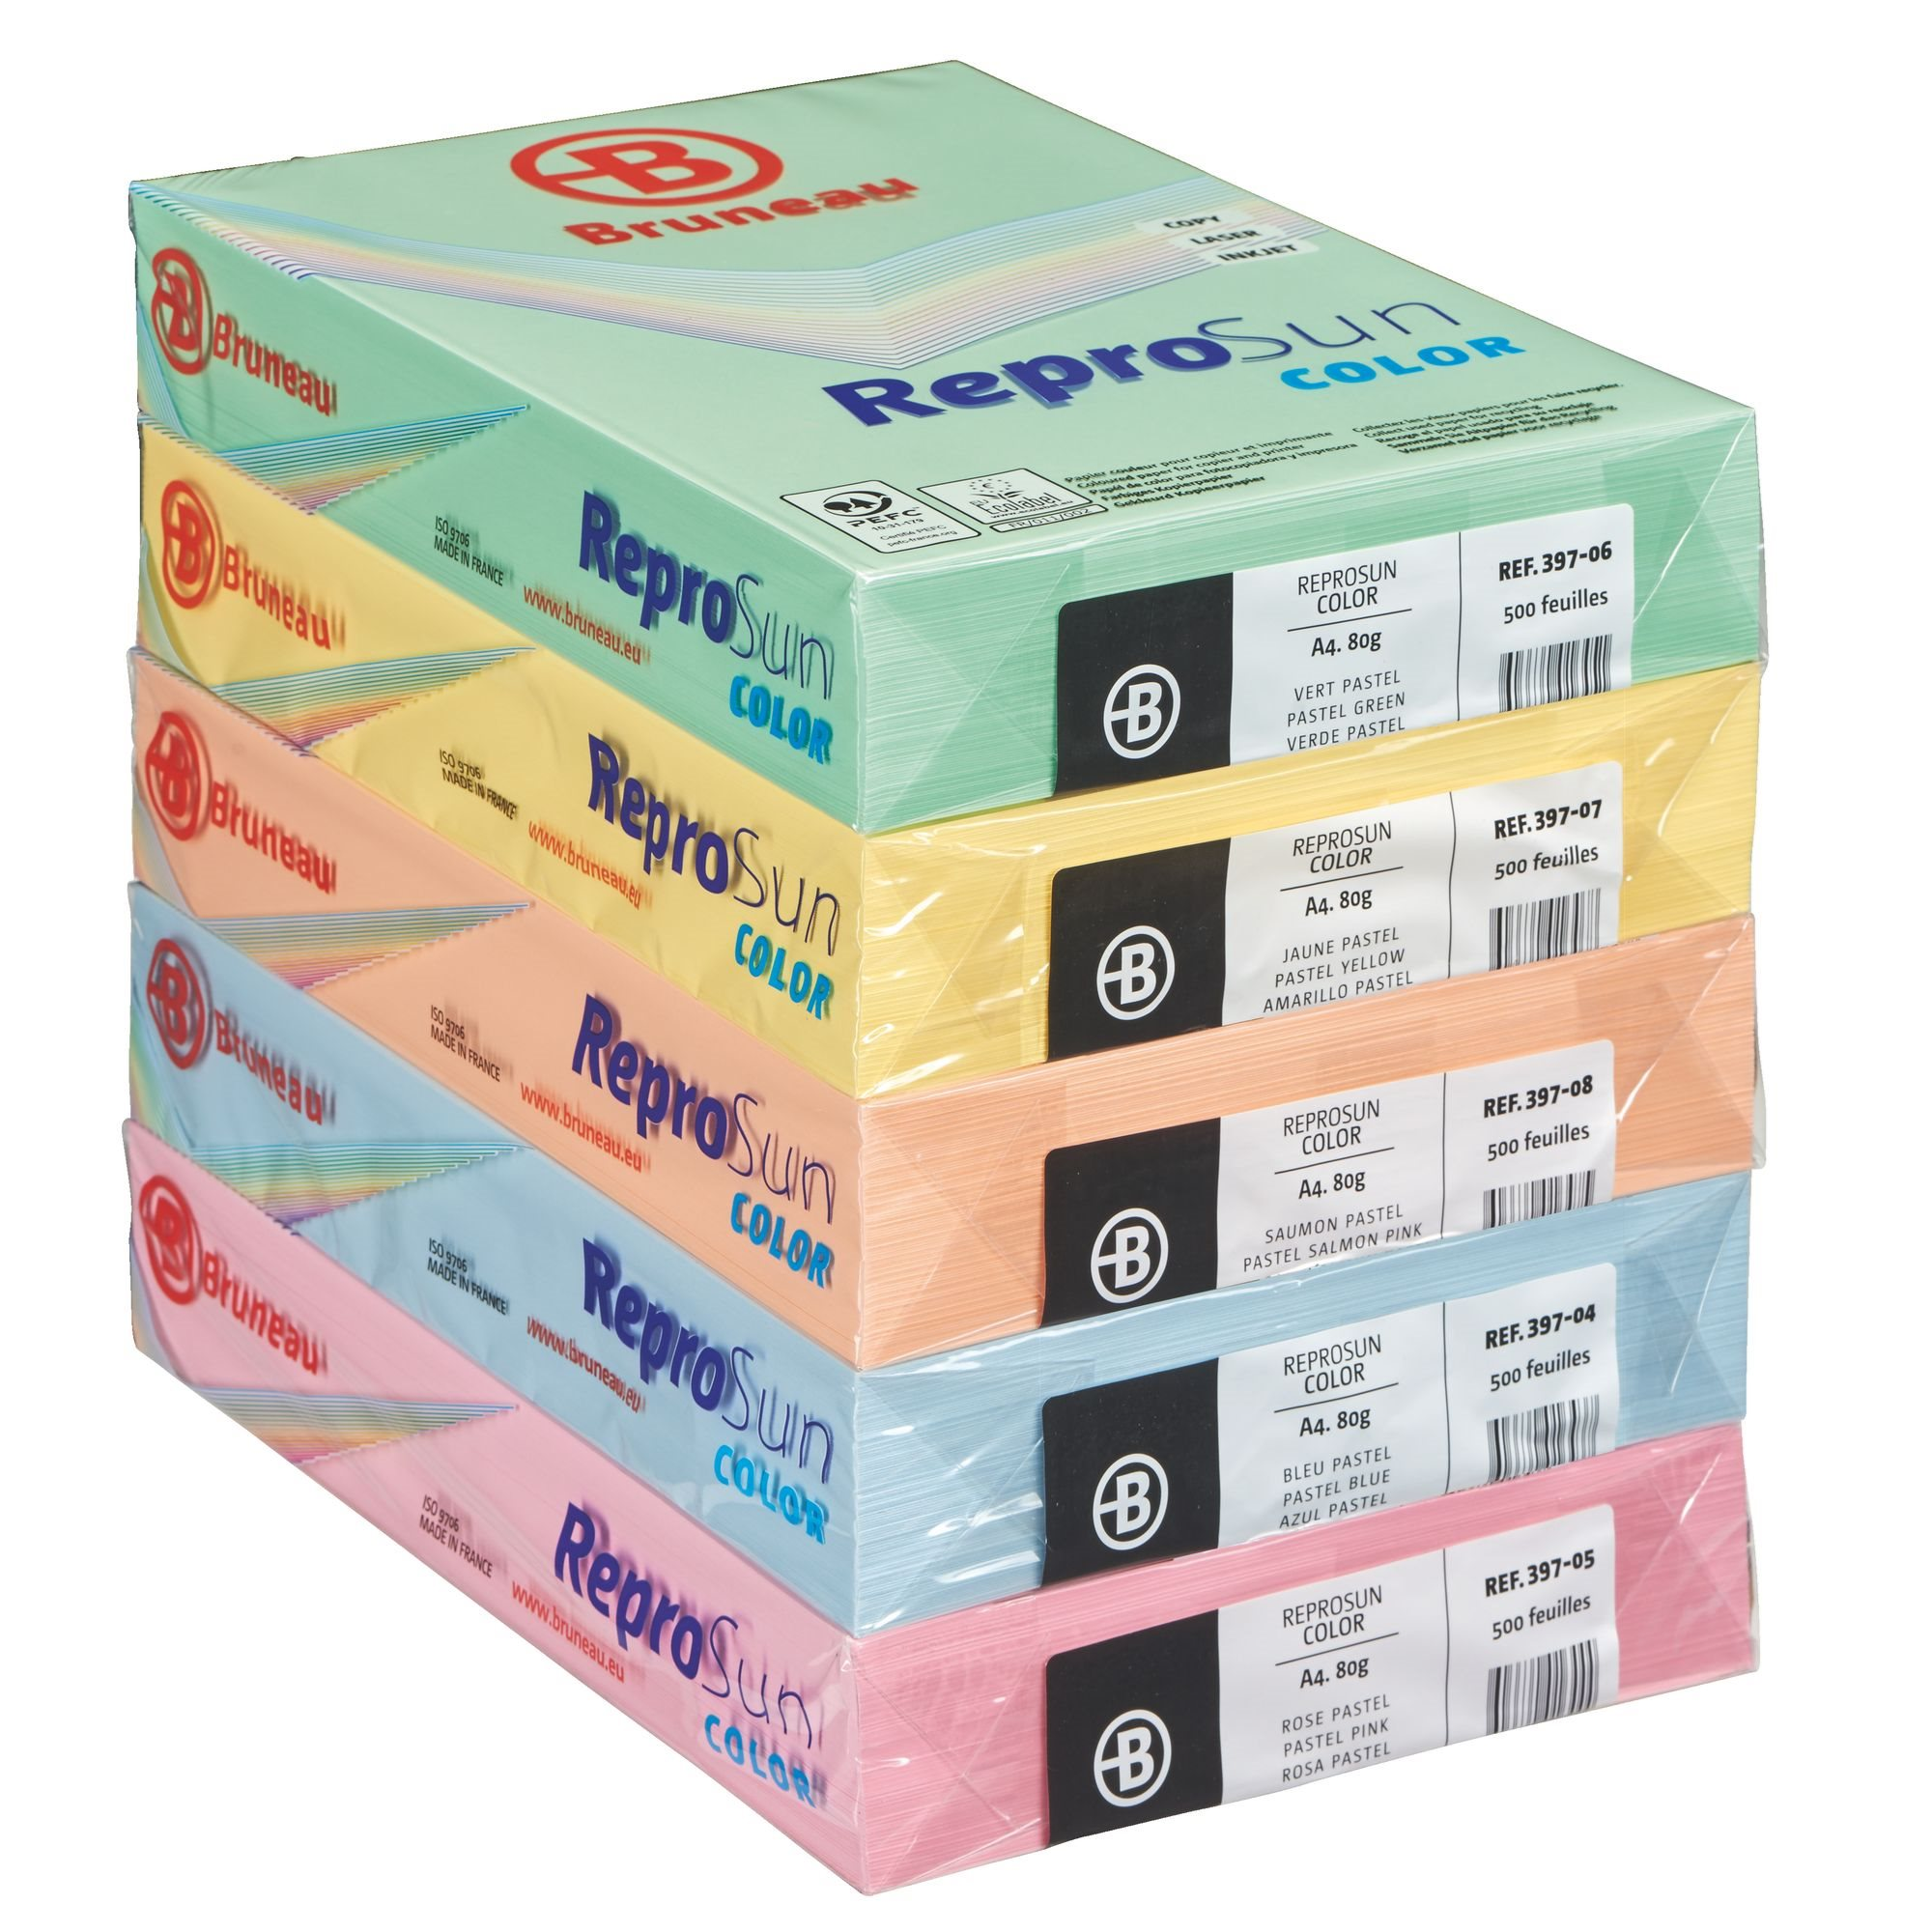 JMB Repro Sun, pack of 5 reams, A4, 80 g, assorted pastel colours